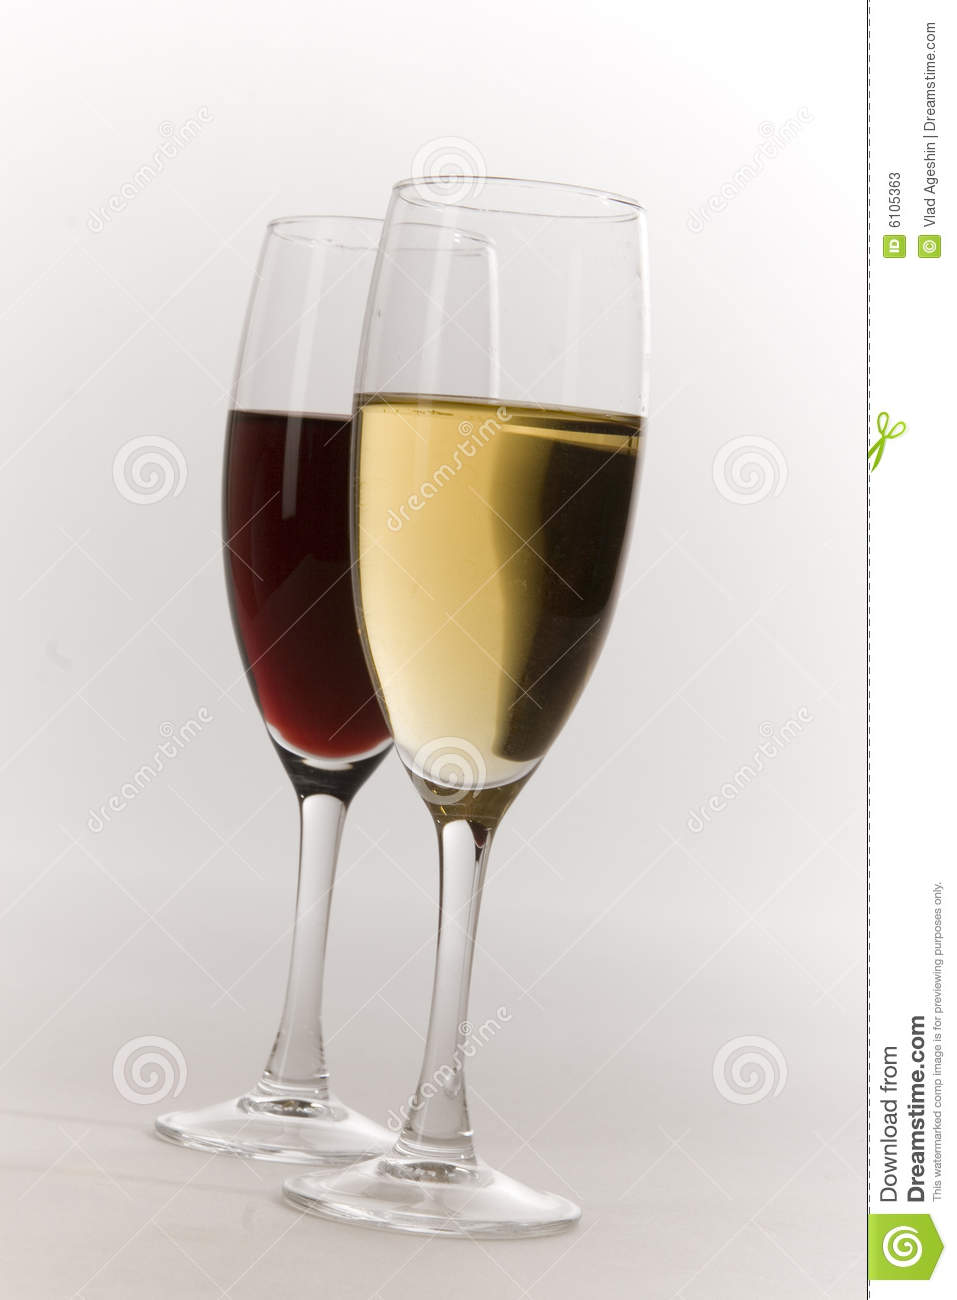 Glasses Of Red And White Wine Stock Photos - Image: 6105363